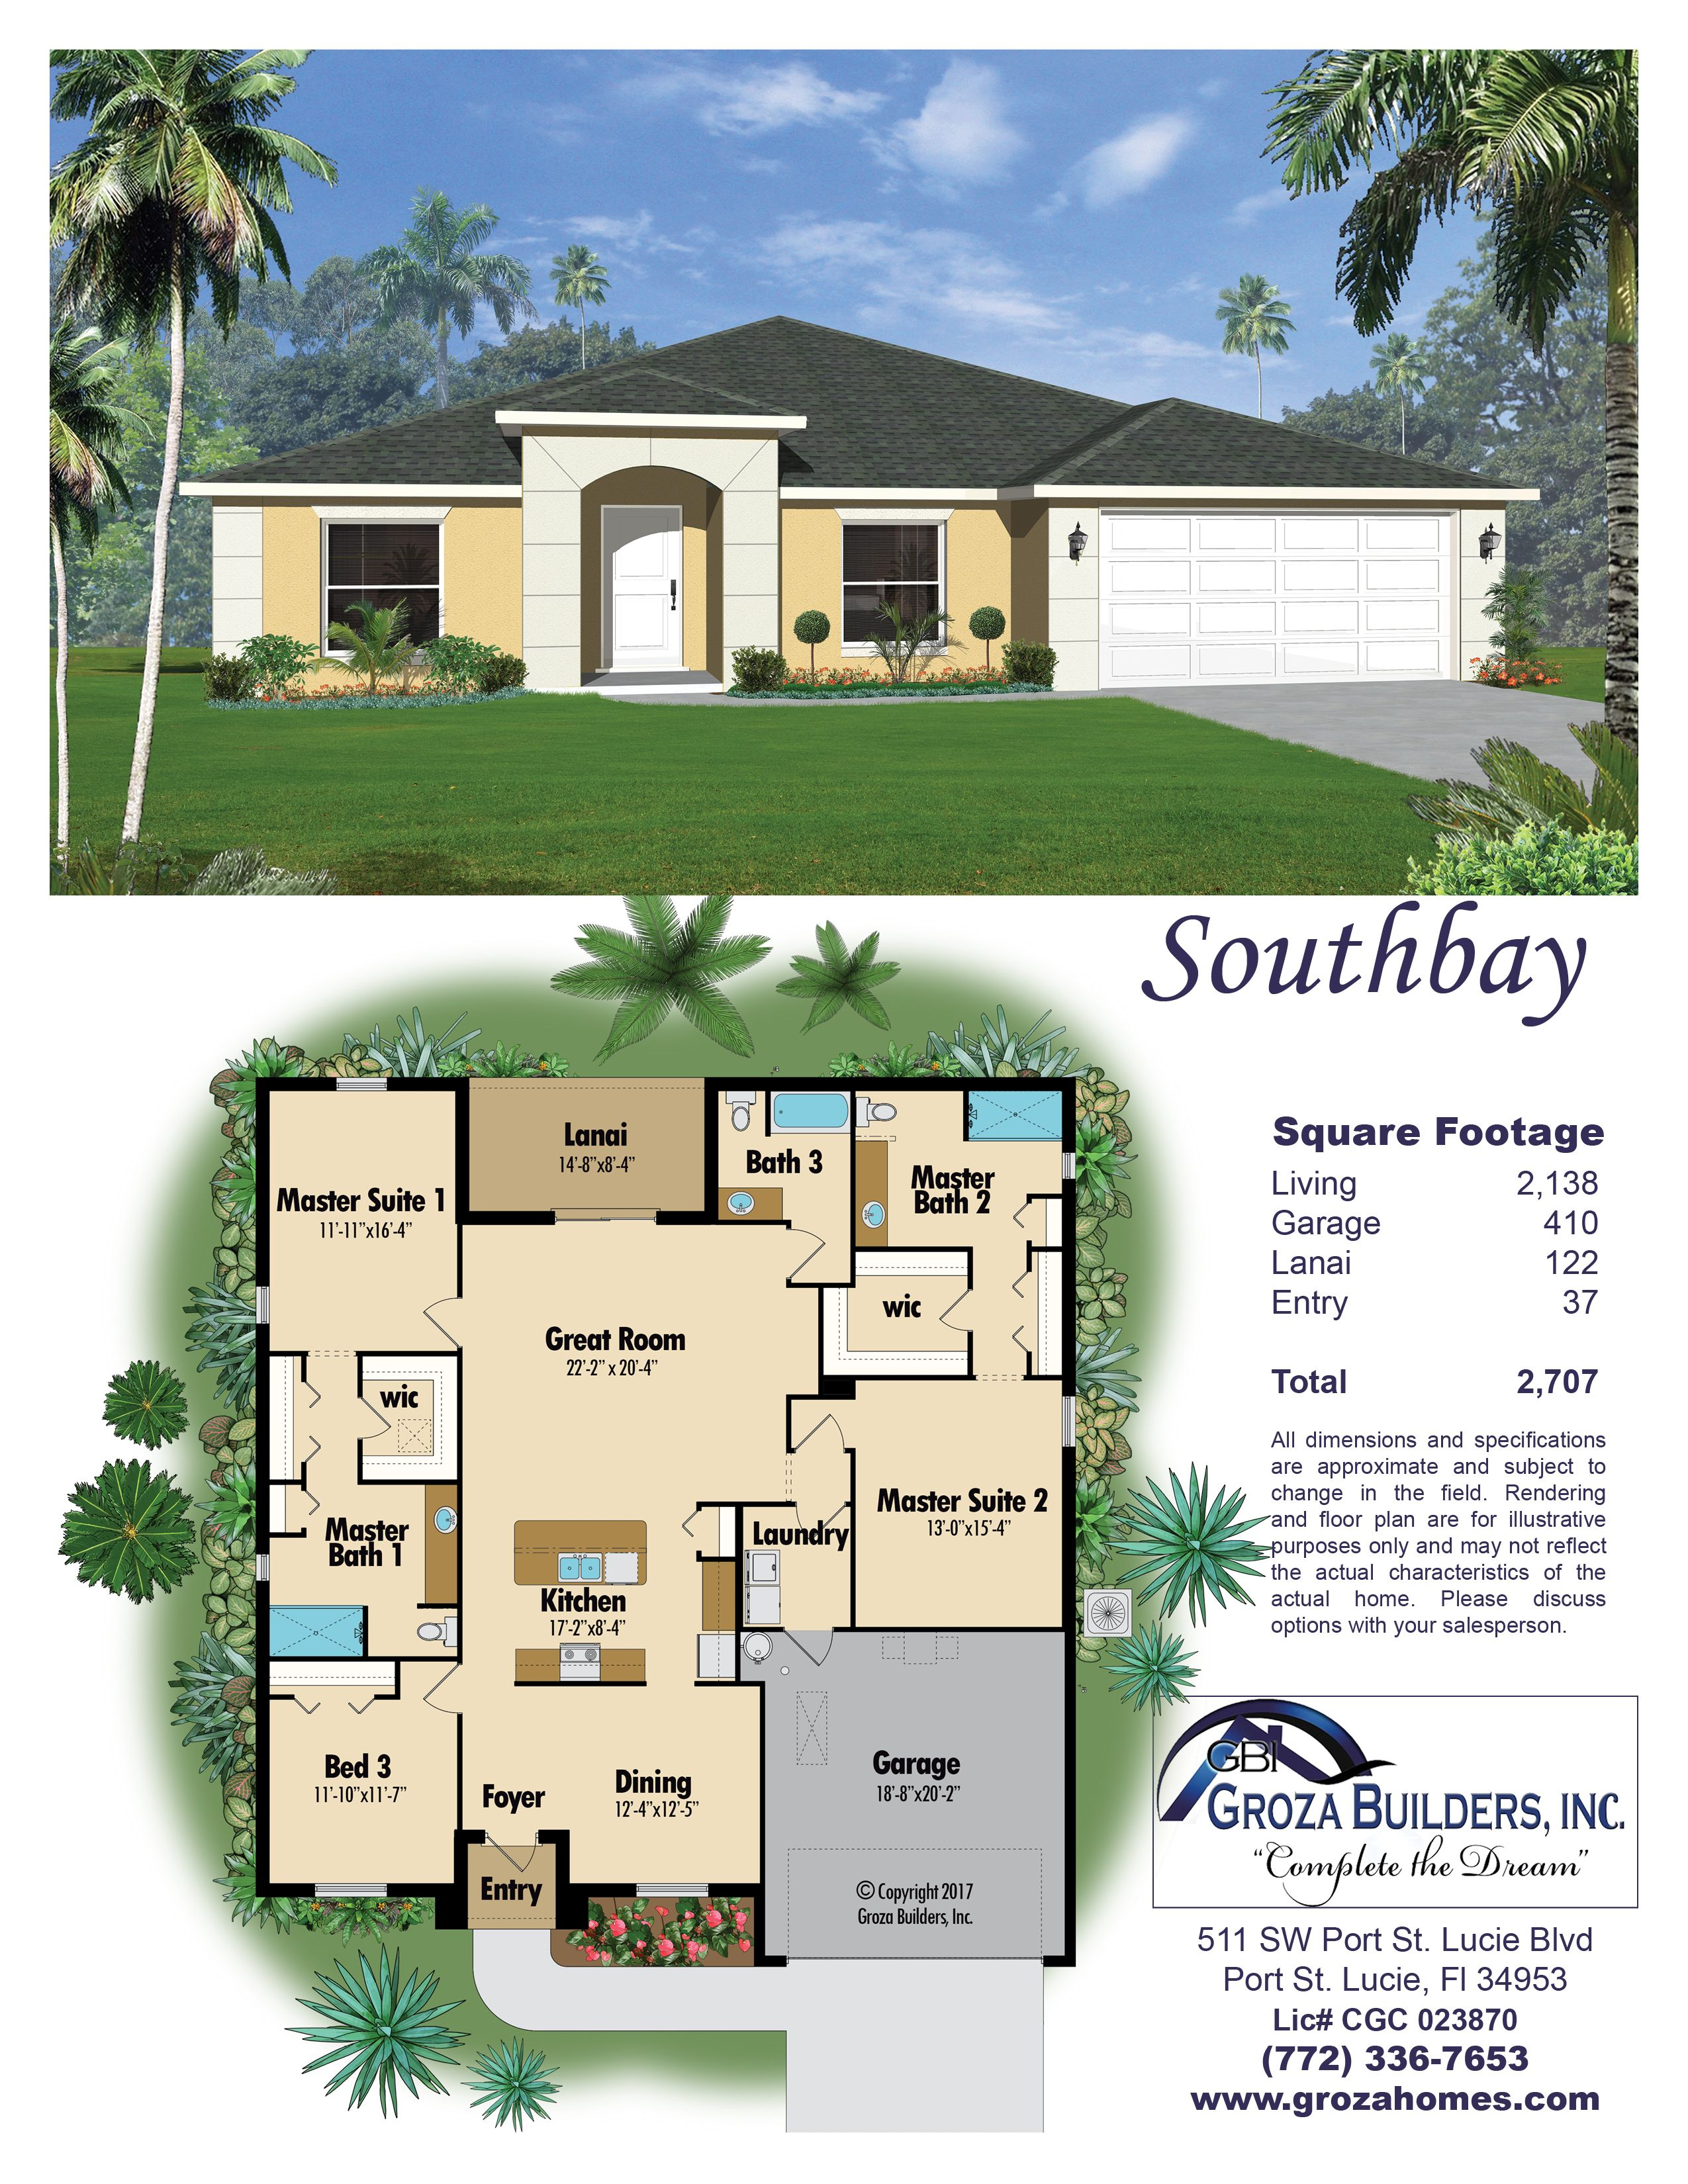 Awwweee Yeahh This Southbay Plan Is Incredible 772 336 7653 Great Rooms Master Suite Floor Plans